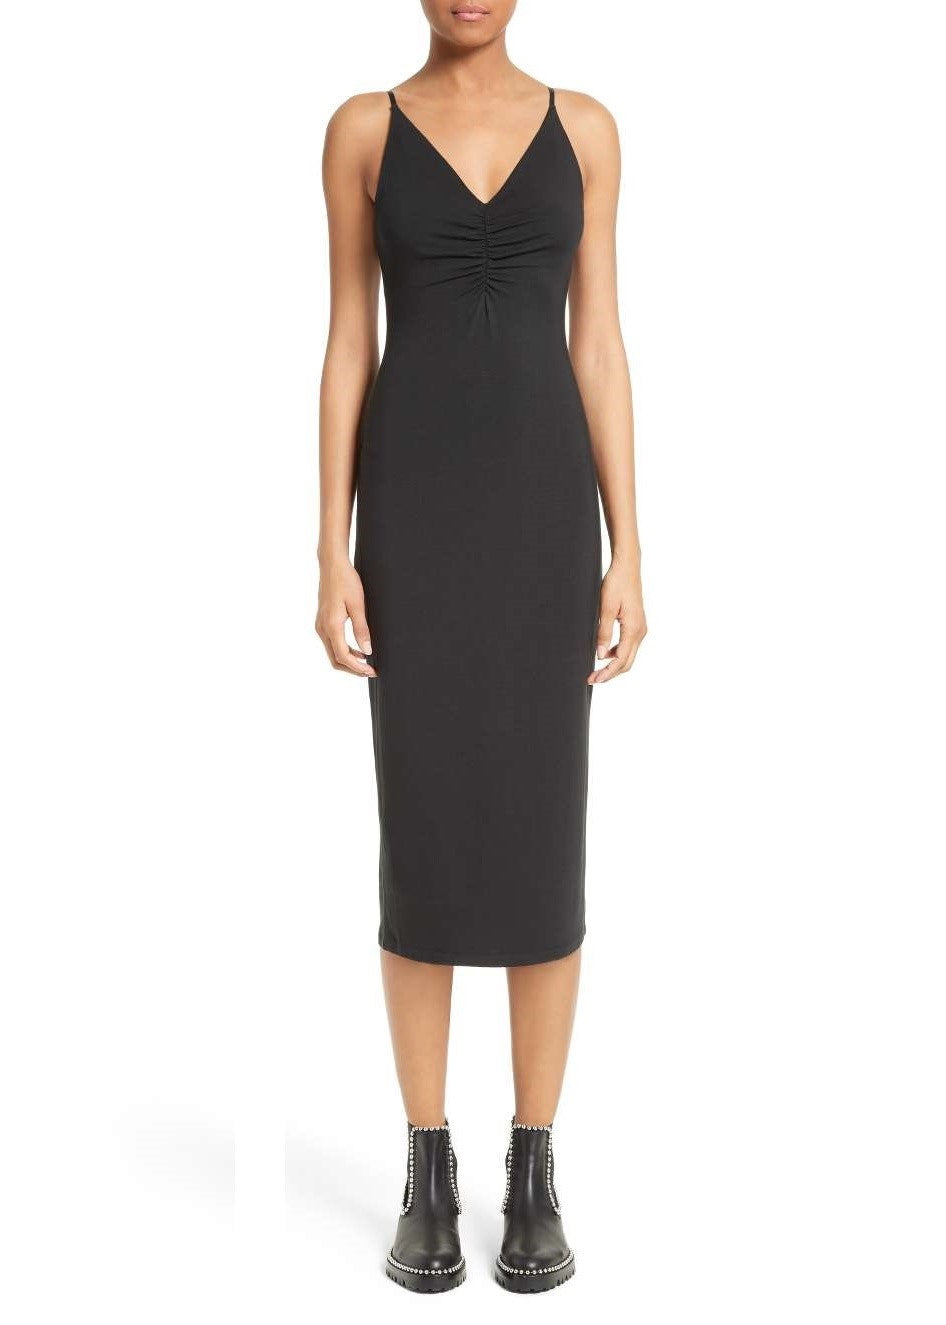 T by Alexander Wang shirred front dress black